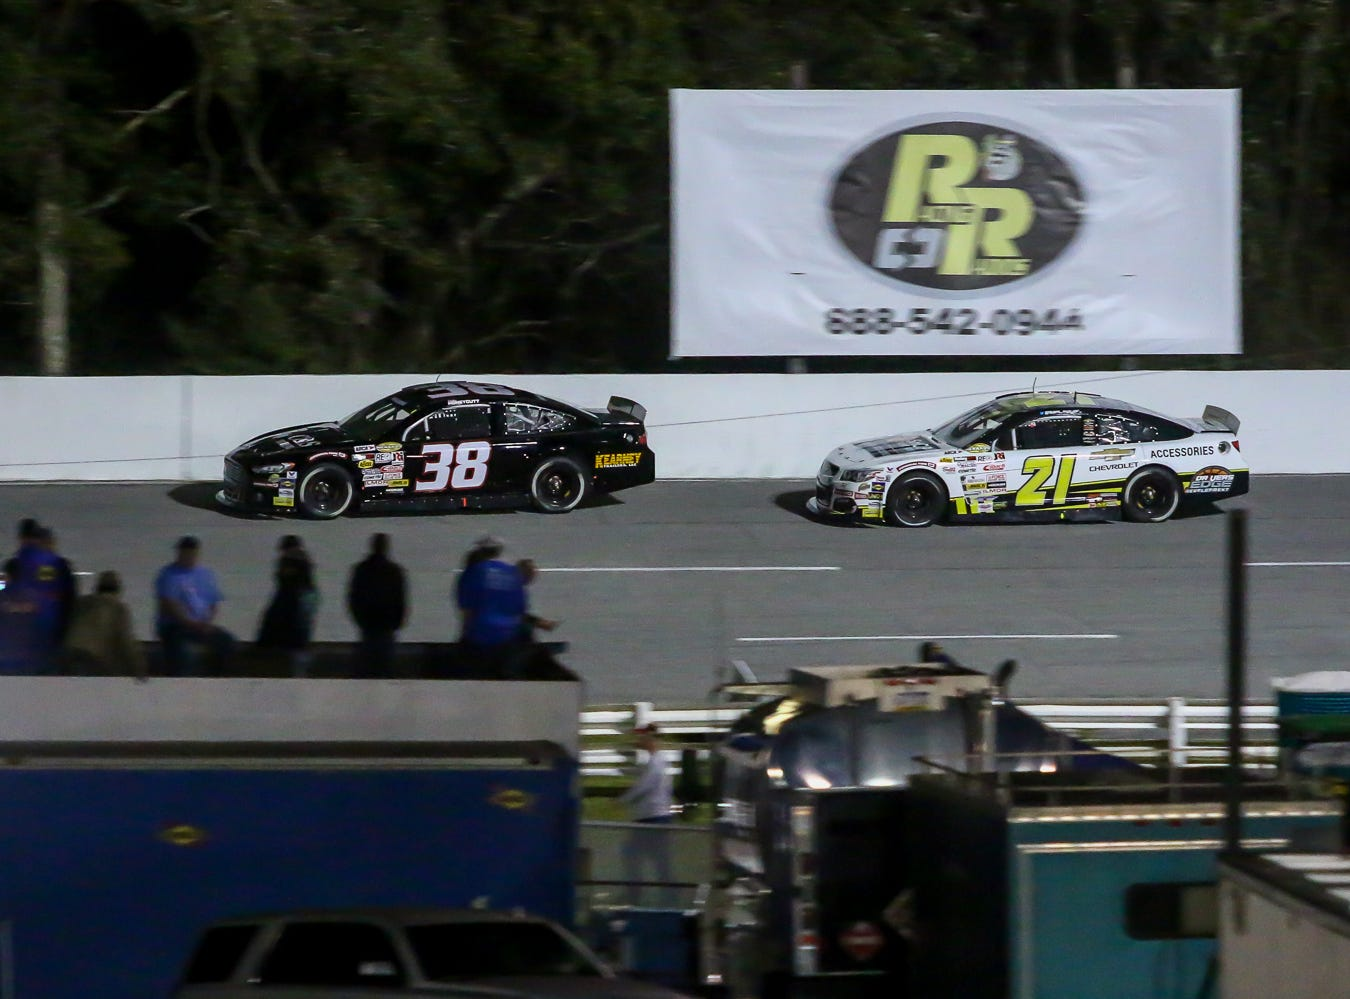 Fans watch as Kaden Honeycut (38) and Sam Mayer (21) make their way around the track during the ARCA Pensacola 200 race presented by Inspectra Thermal Solutions on Saturday, March 9, 2019, at Five Flags Speedway. Michael Self, of Salt Lake City, won the race.